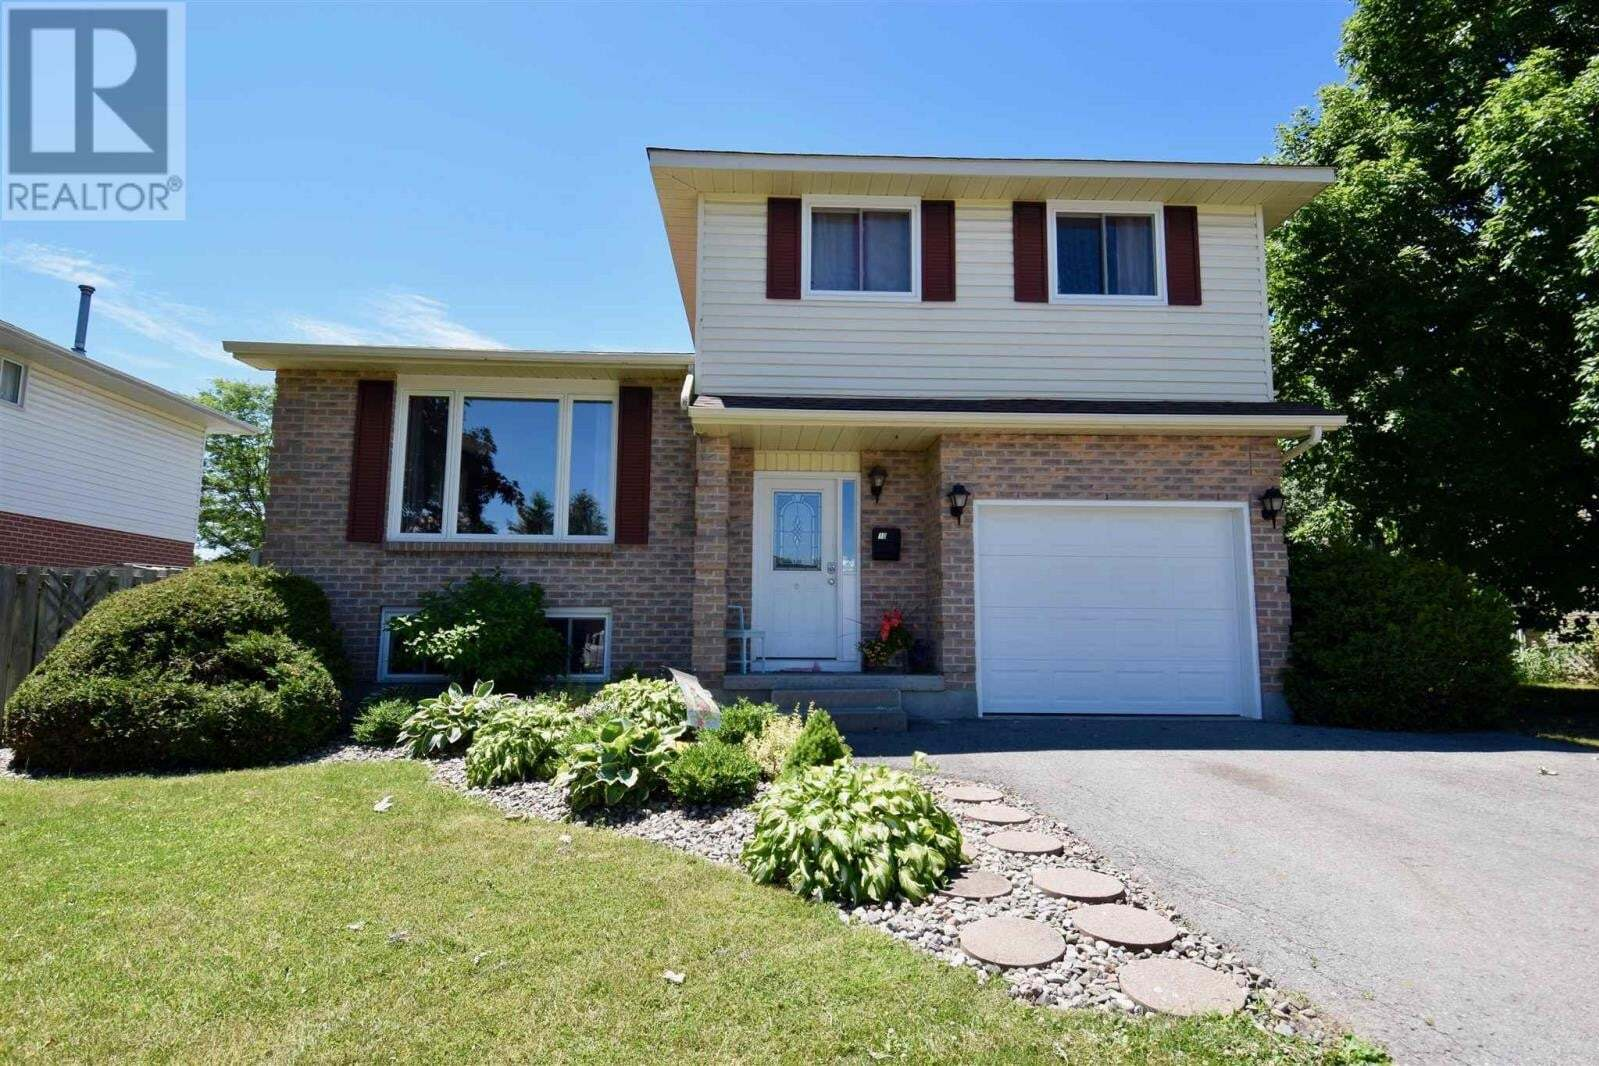 House for sale at 10 Angus Dr Napanee Ontario - MLS: K20003455